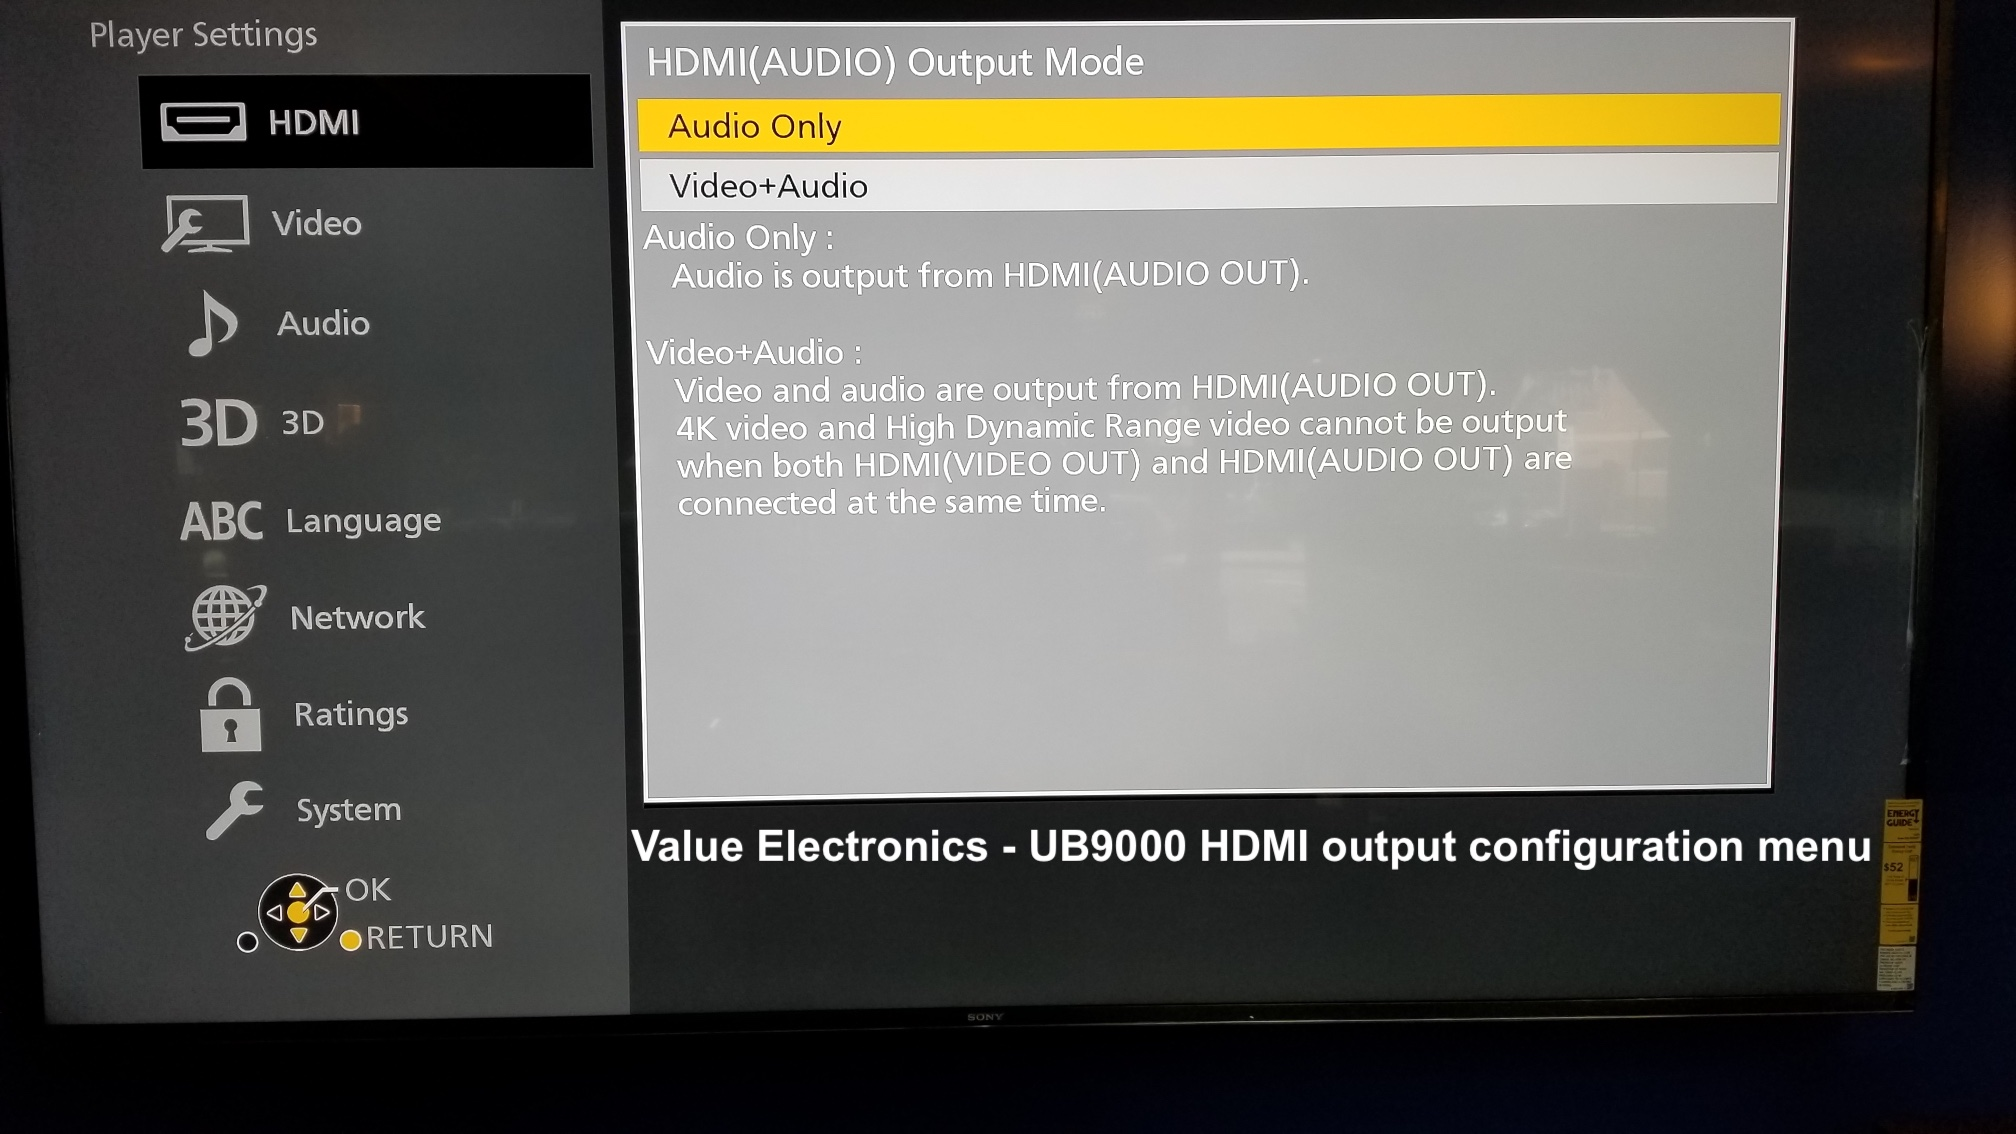 Panasonic UB9000 HDMI output configuration menu.jpg